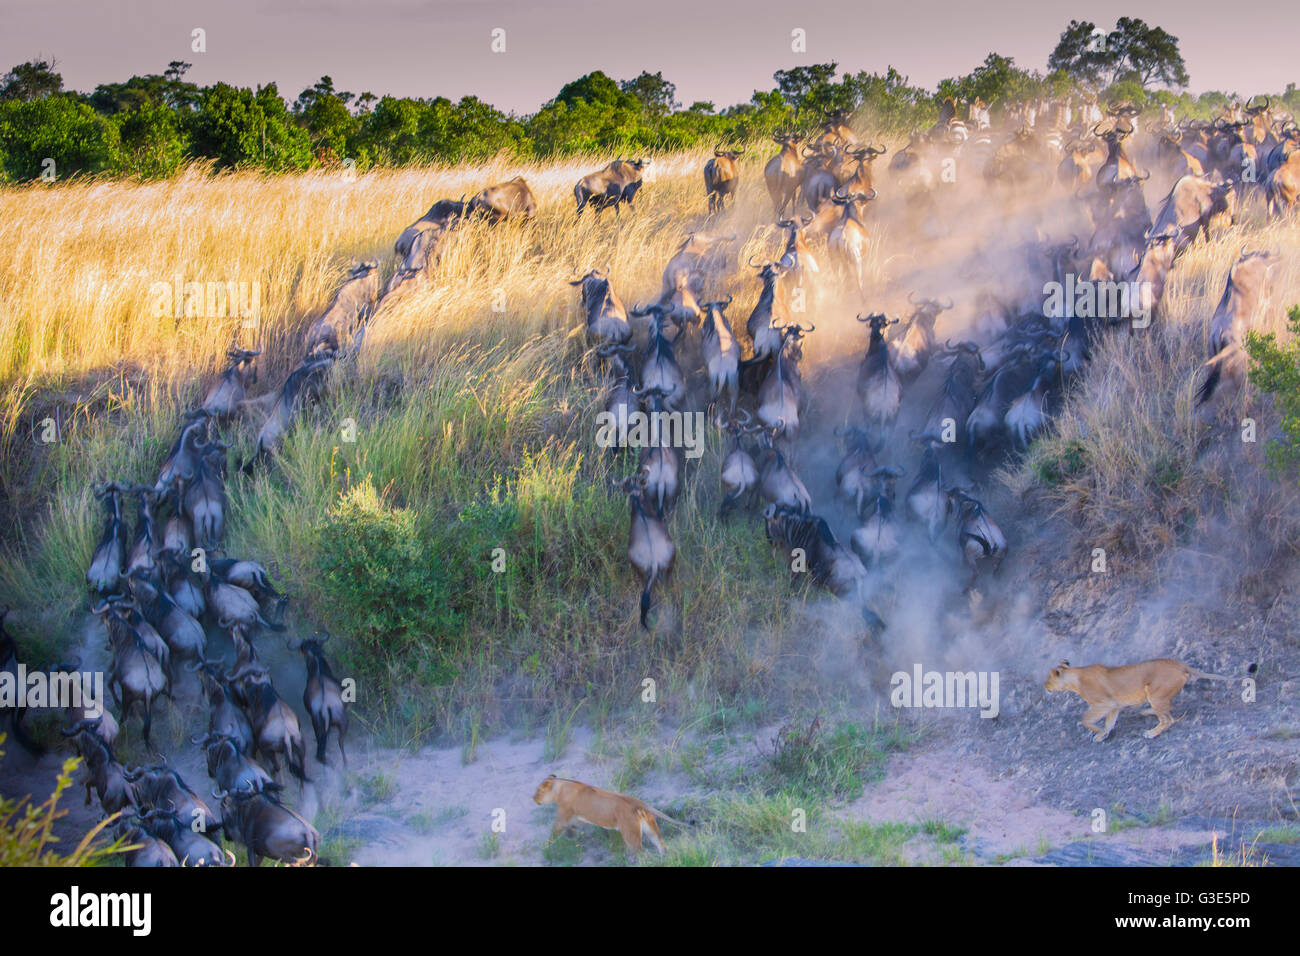 Wildebeest, Connochaetes taurinus, crossing the Mara River with two Lionesses, Panthera leo, in pursuit Stock Photo